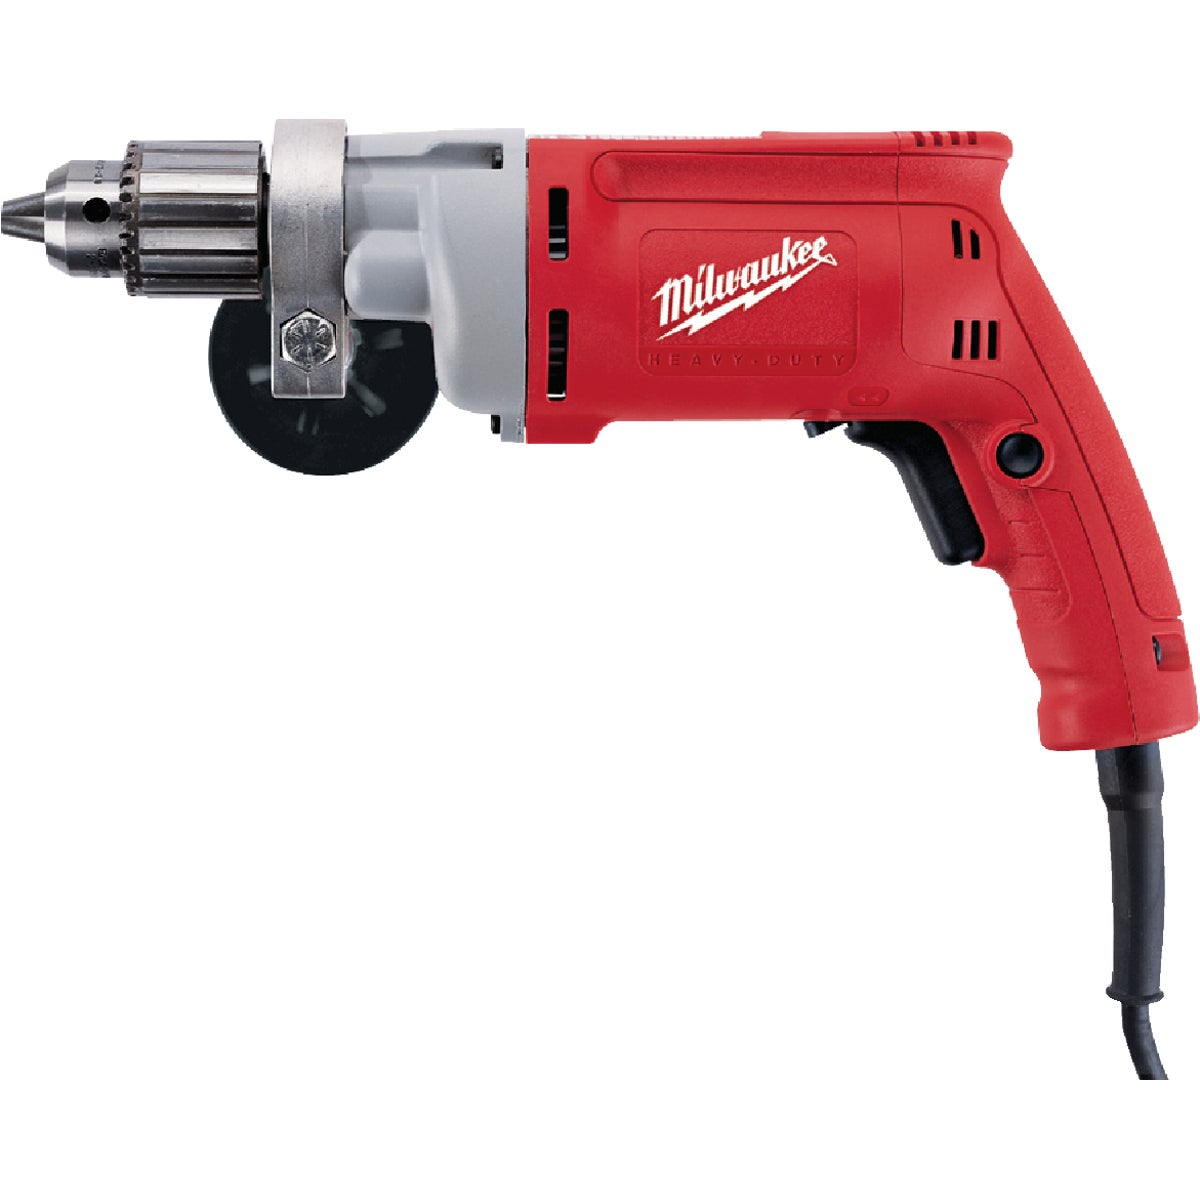 "1/2"" DRILL - 029920 by Milwaukee Elec Tool"